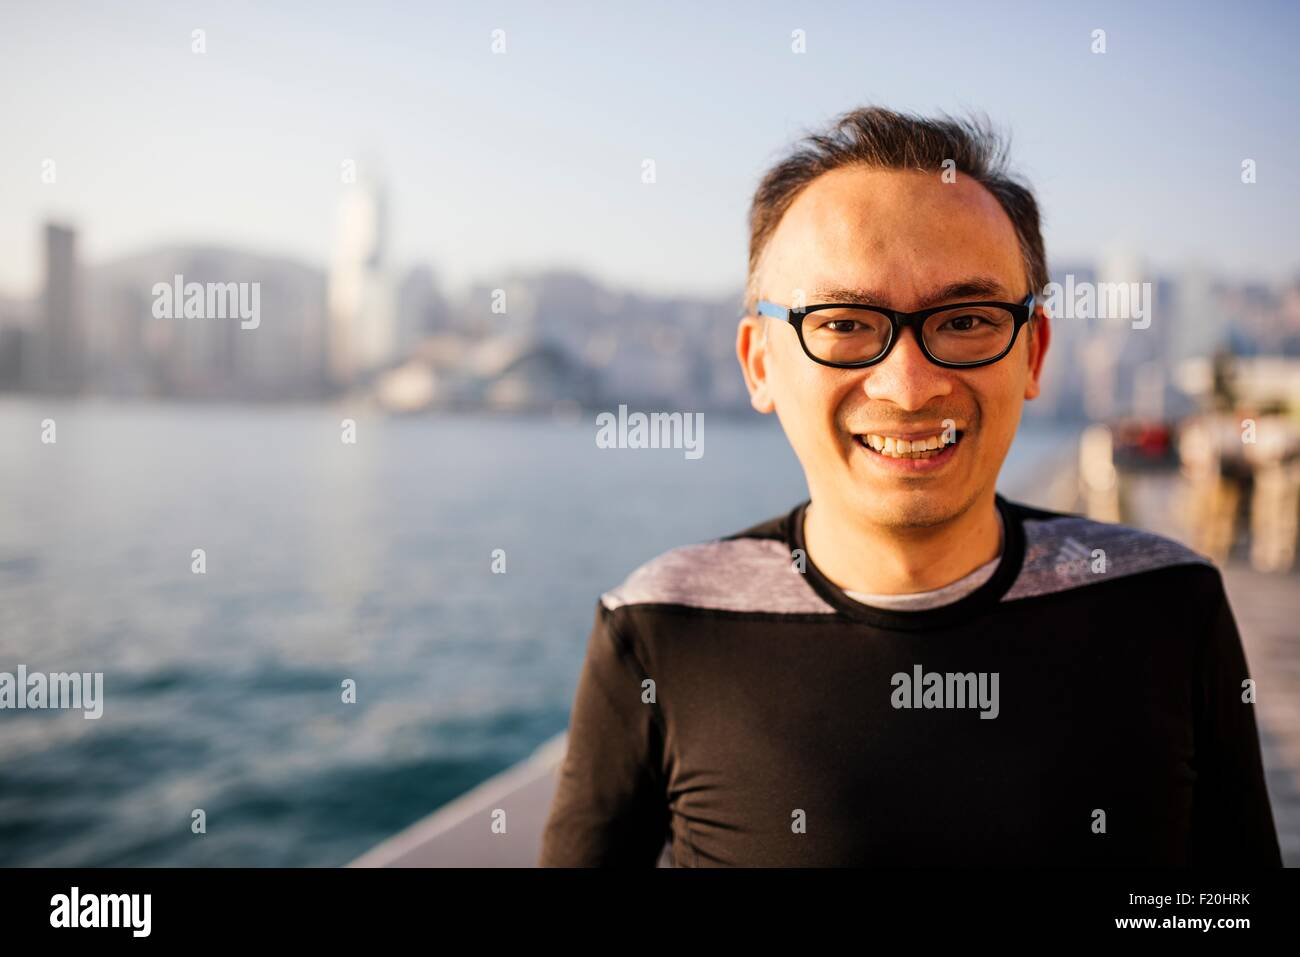 Portrait of mid adult man wearing glasses in front of water, looking at camera smiling - Stock Image